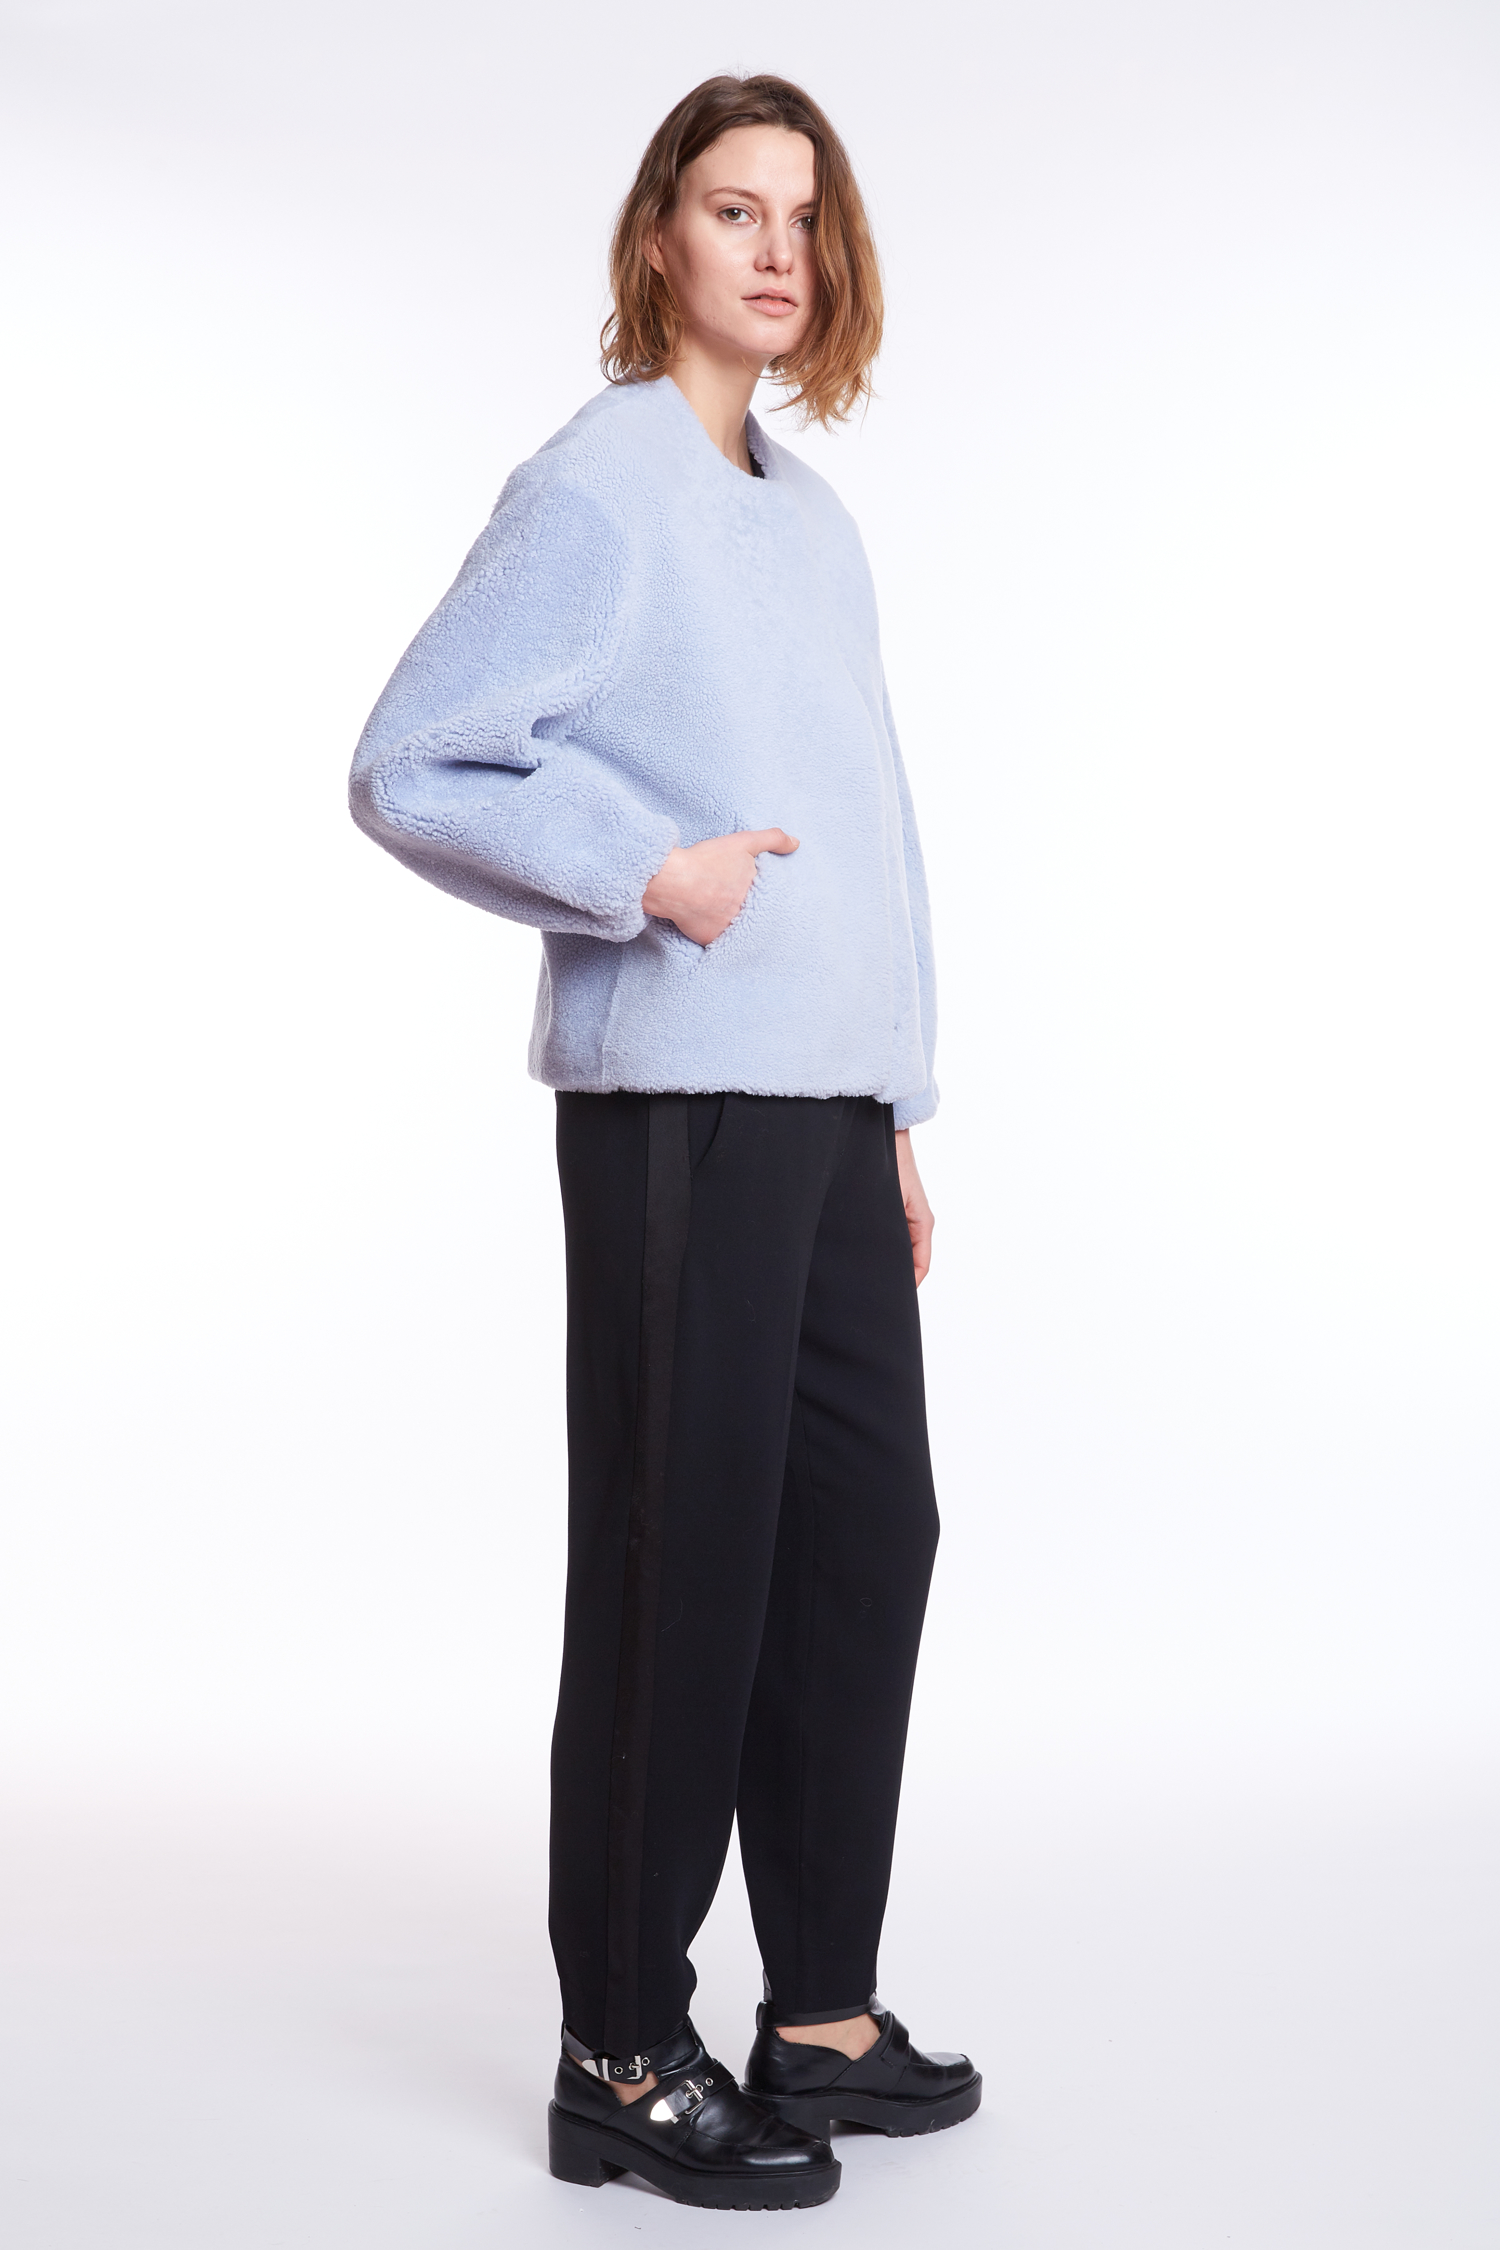 sprung-collection-2019-aquila